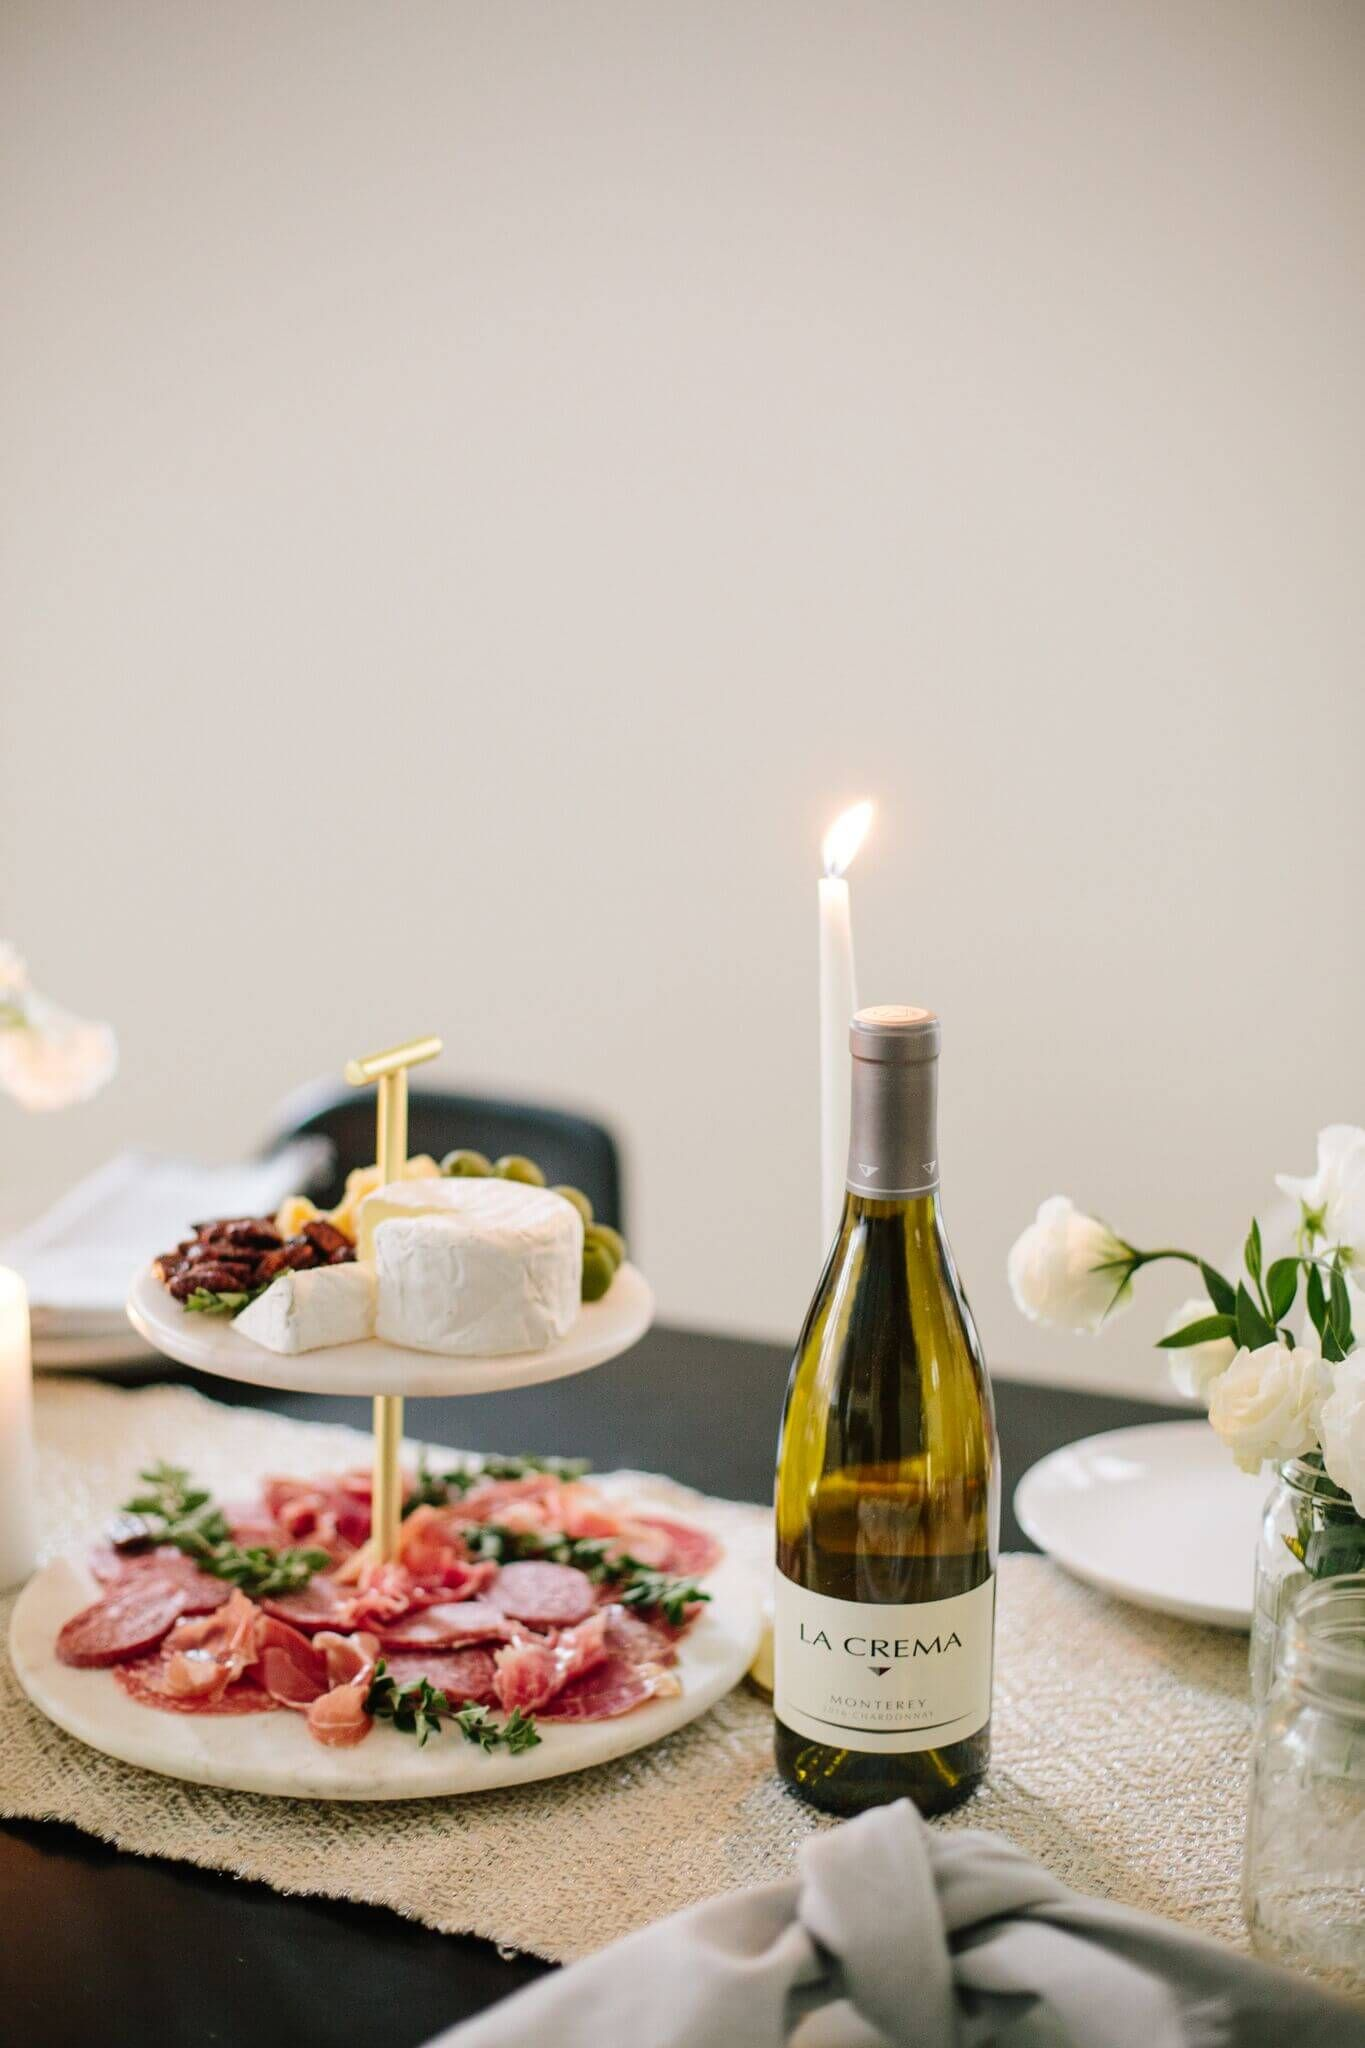 La Conservation Du Vin host a hygge inspired party for national drink wine day